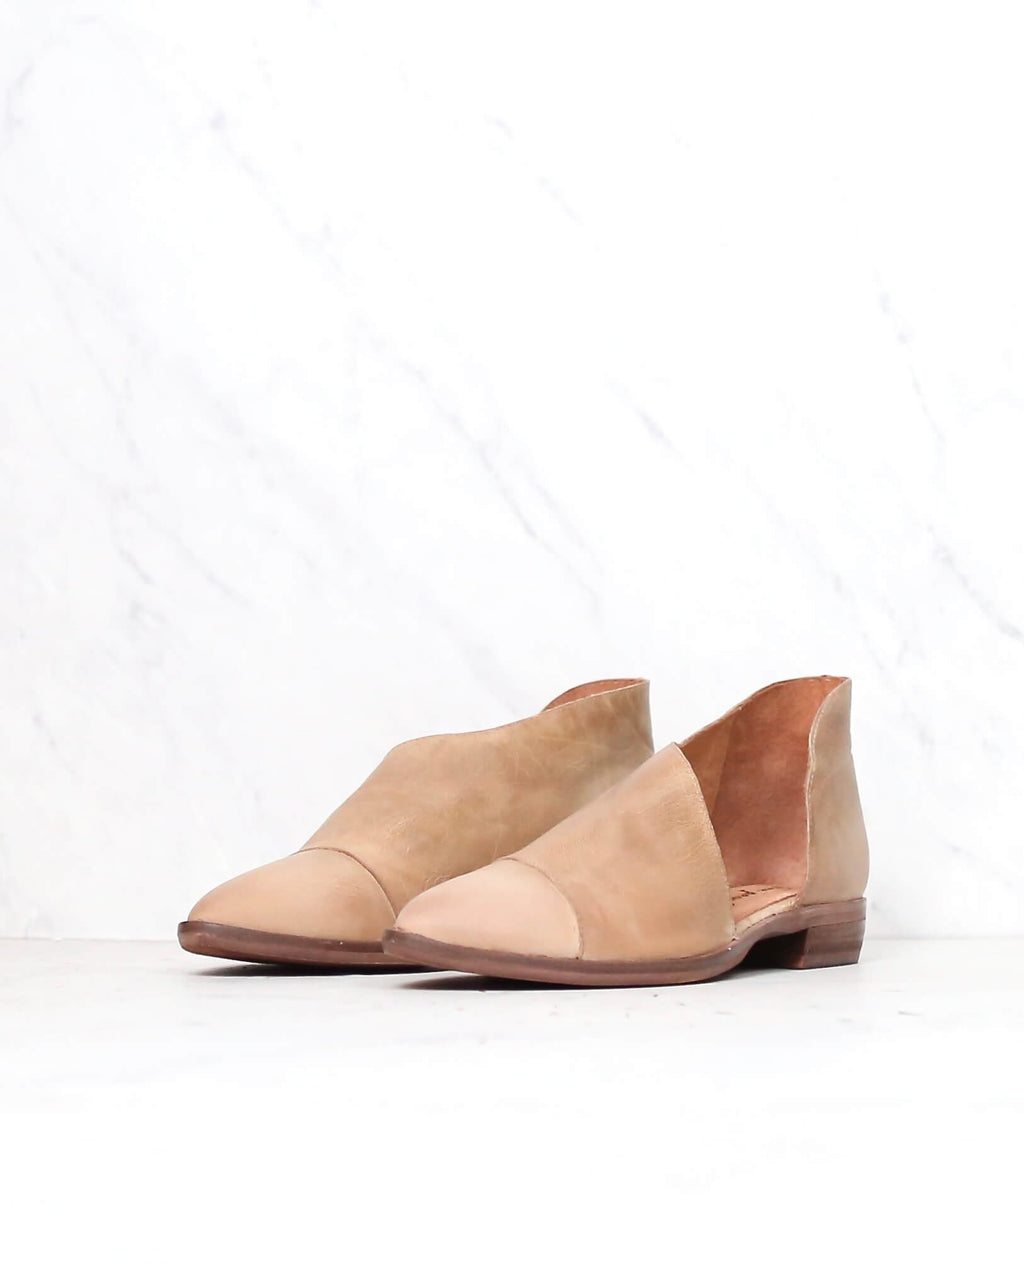 free people - 'royale' d'orsay style pointy toe flat